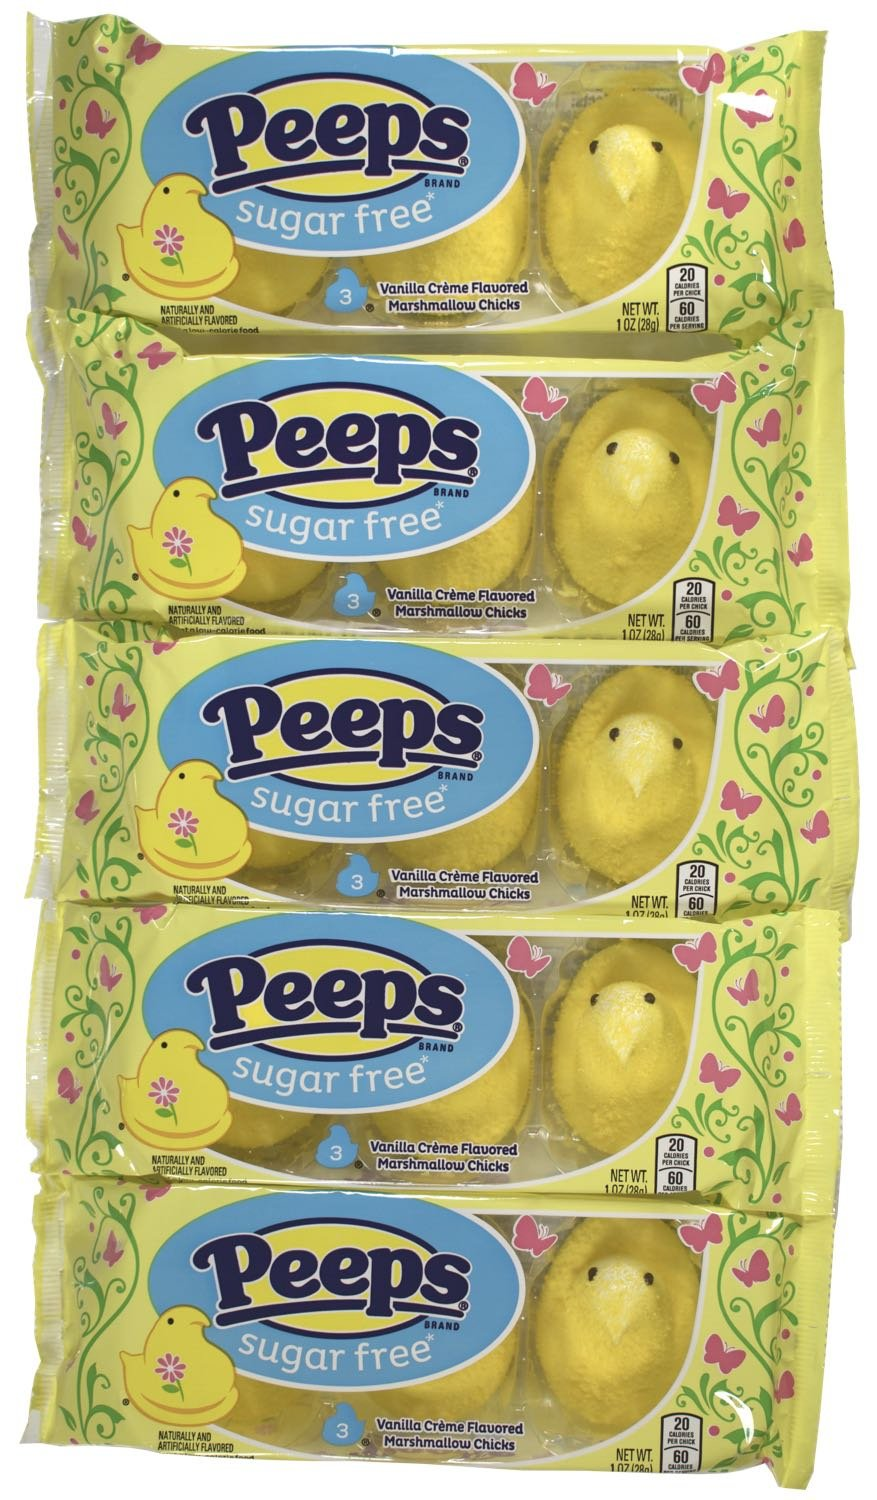 Peeps Sugar Free Marshmallow Chicks, 3 Chicks per Package, Set of 5 Packages